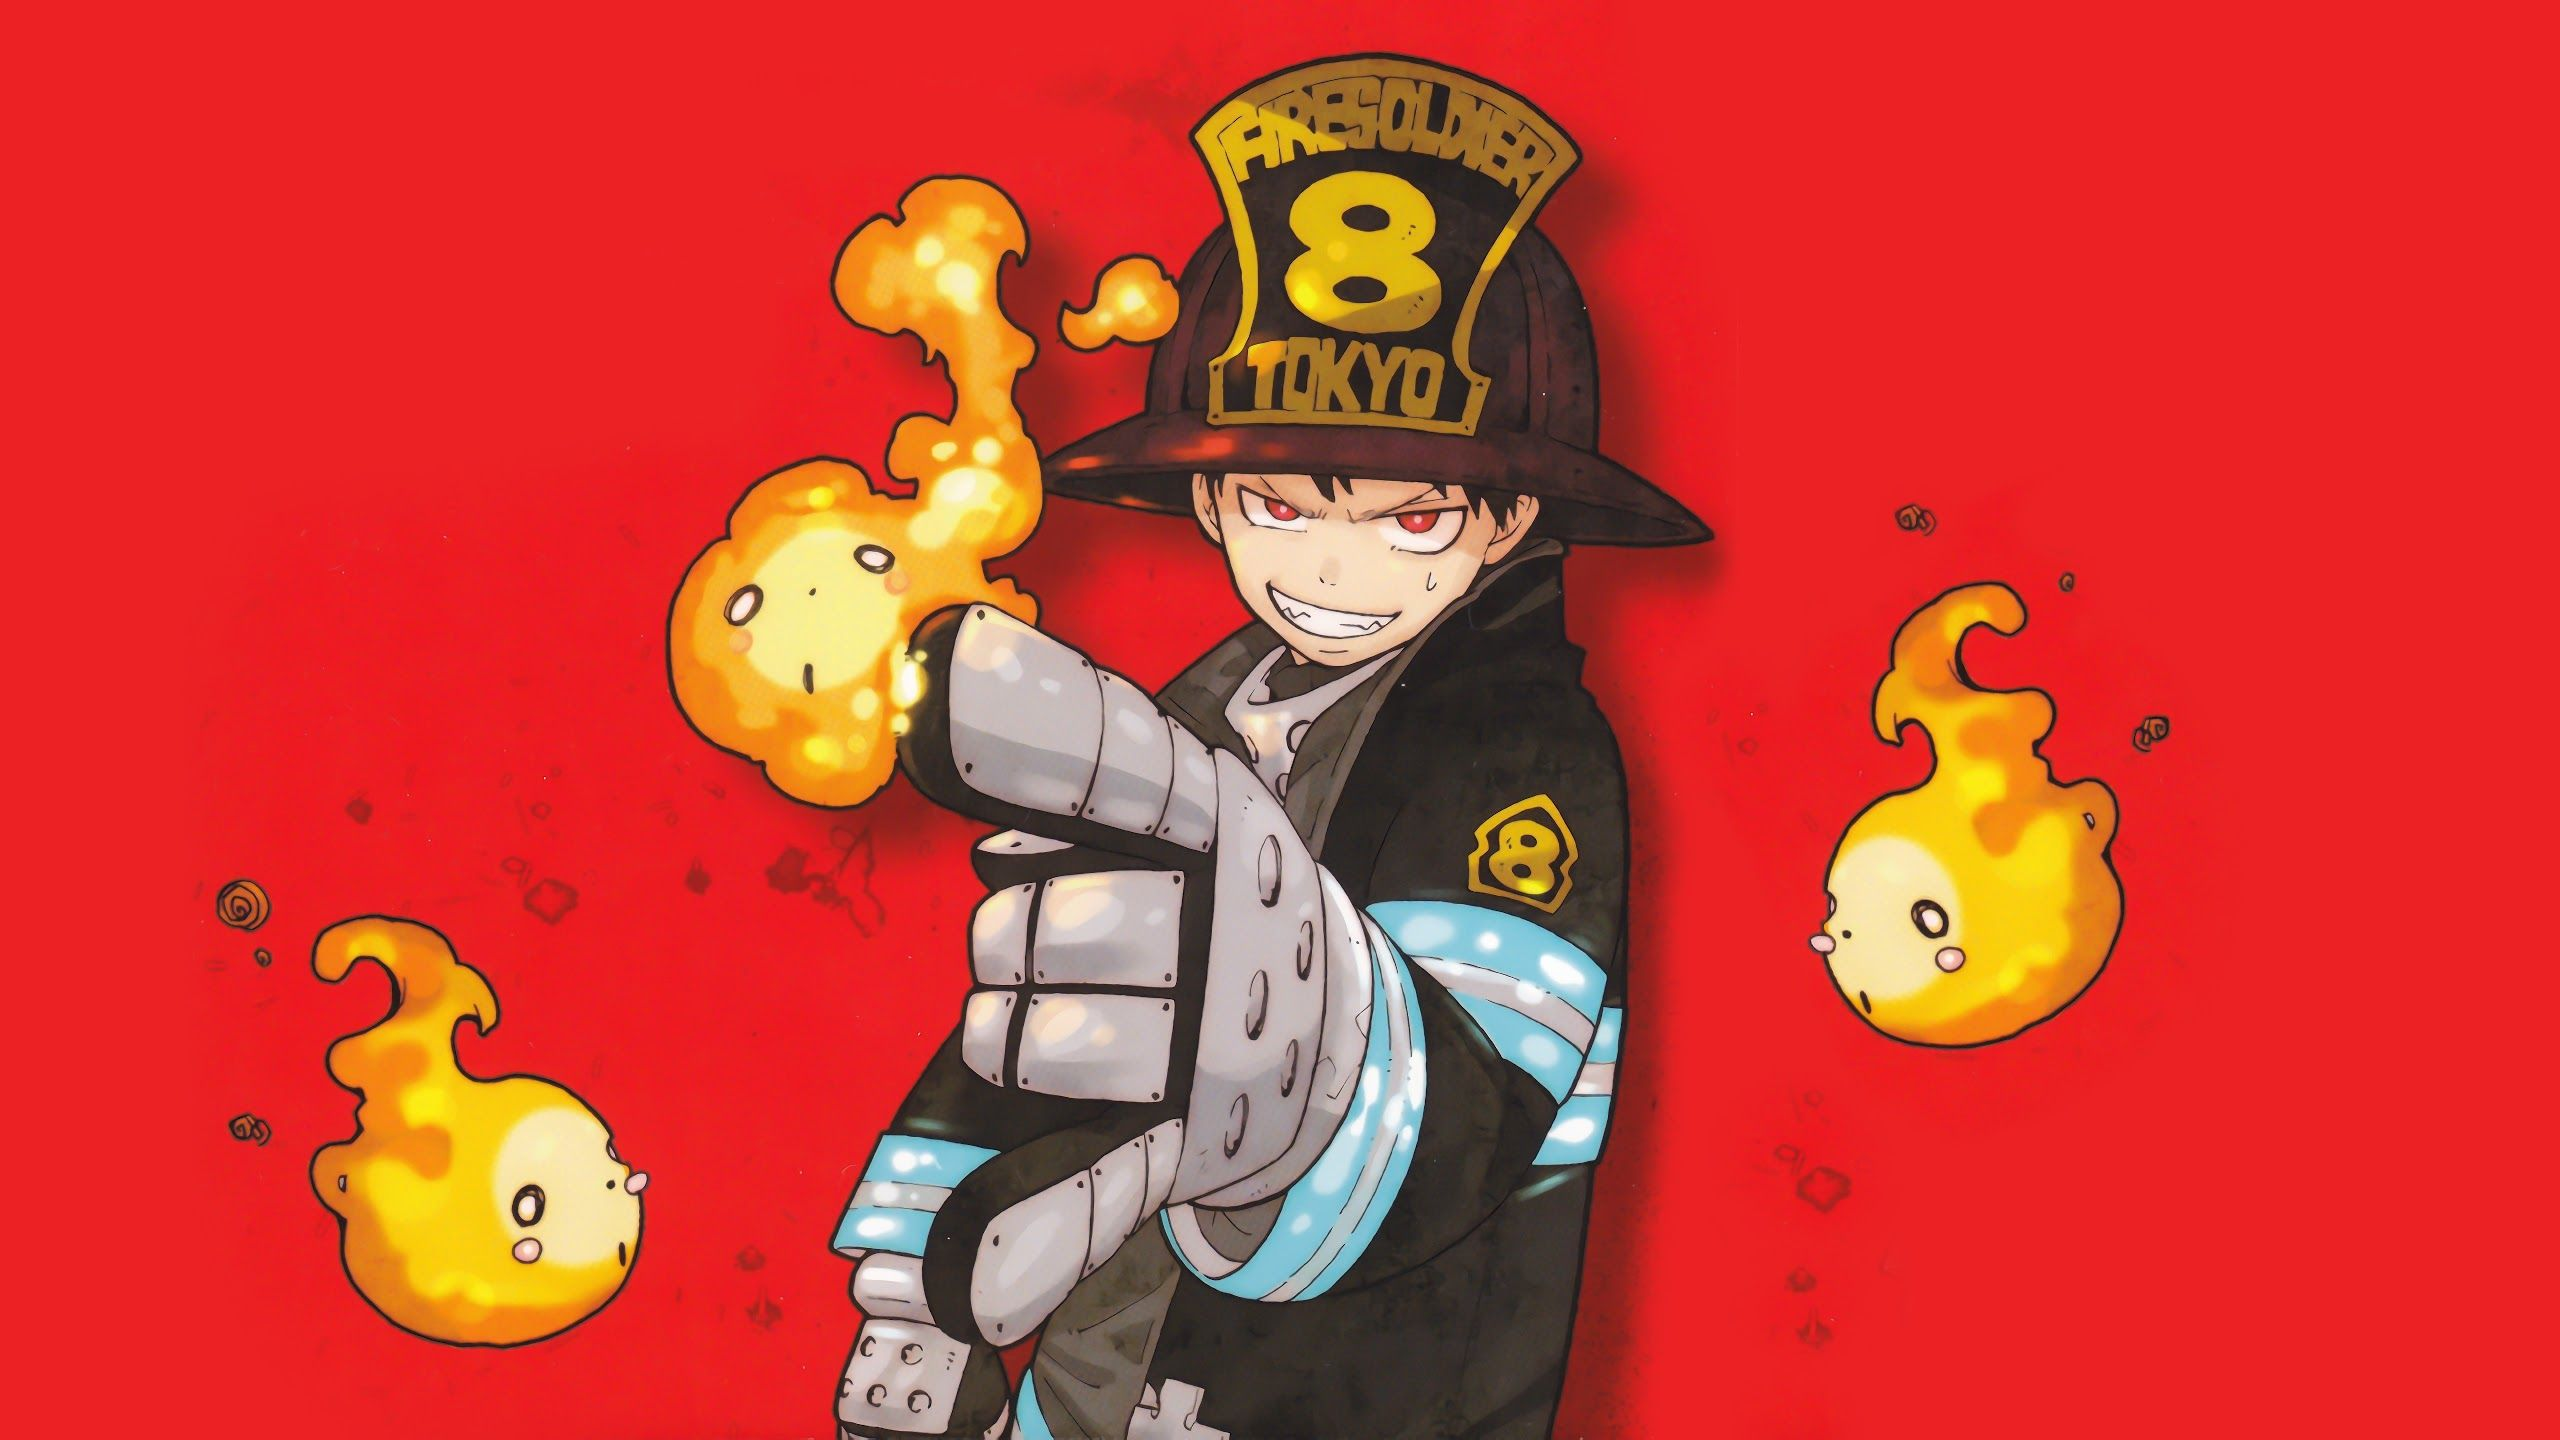 Fire Force Shinra Devil Wallpaper Anime Wallpapers Ghosts free fire wallpaper in games wallpaper collection, images, photos and background gallery. fire force shinra devil wallpaper